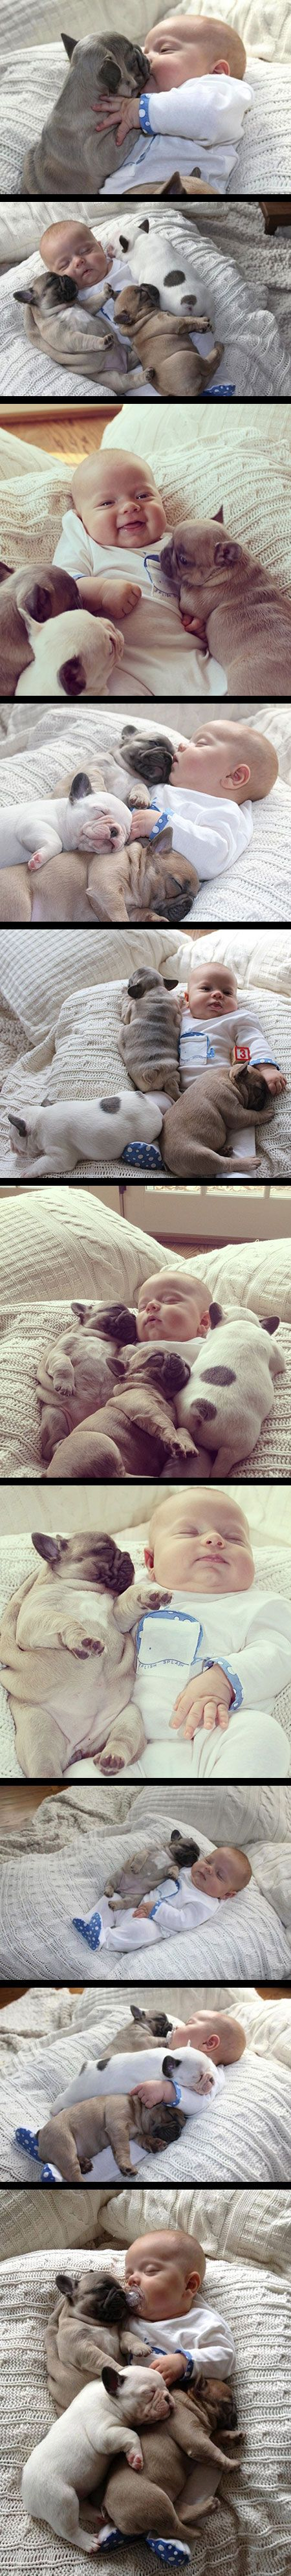 Oh my goodness! This is adorable!